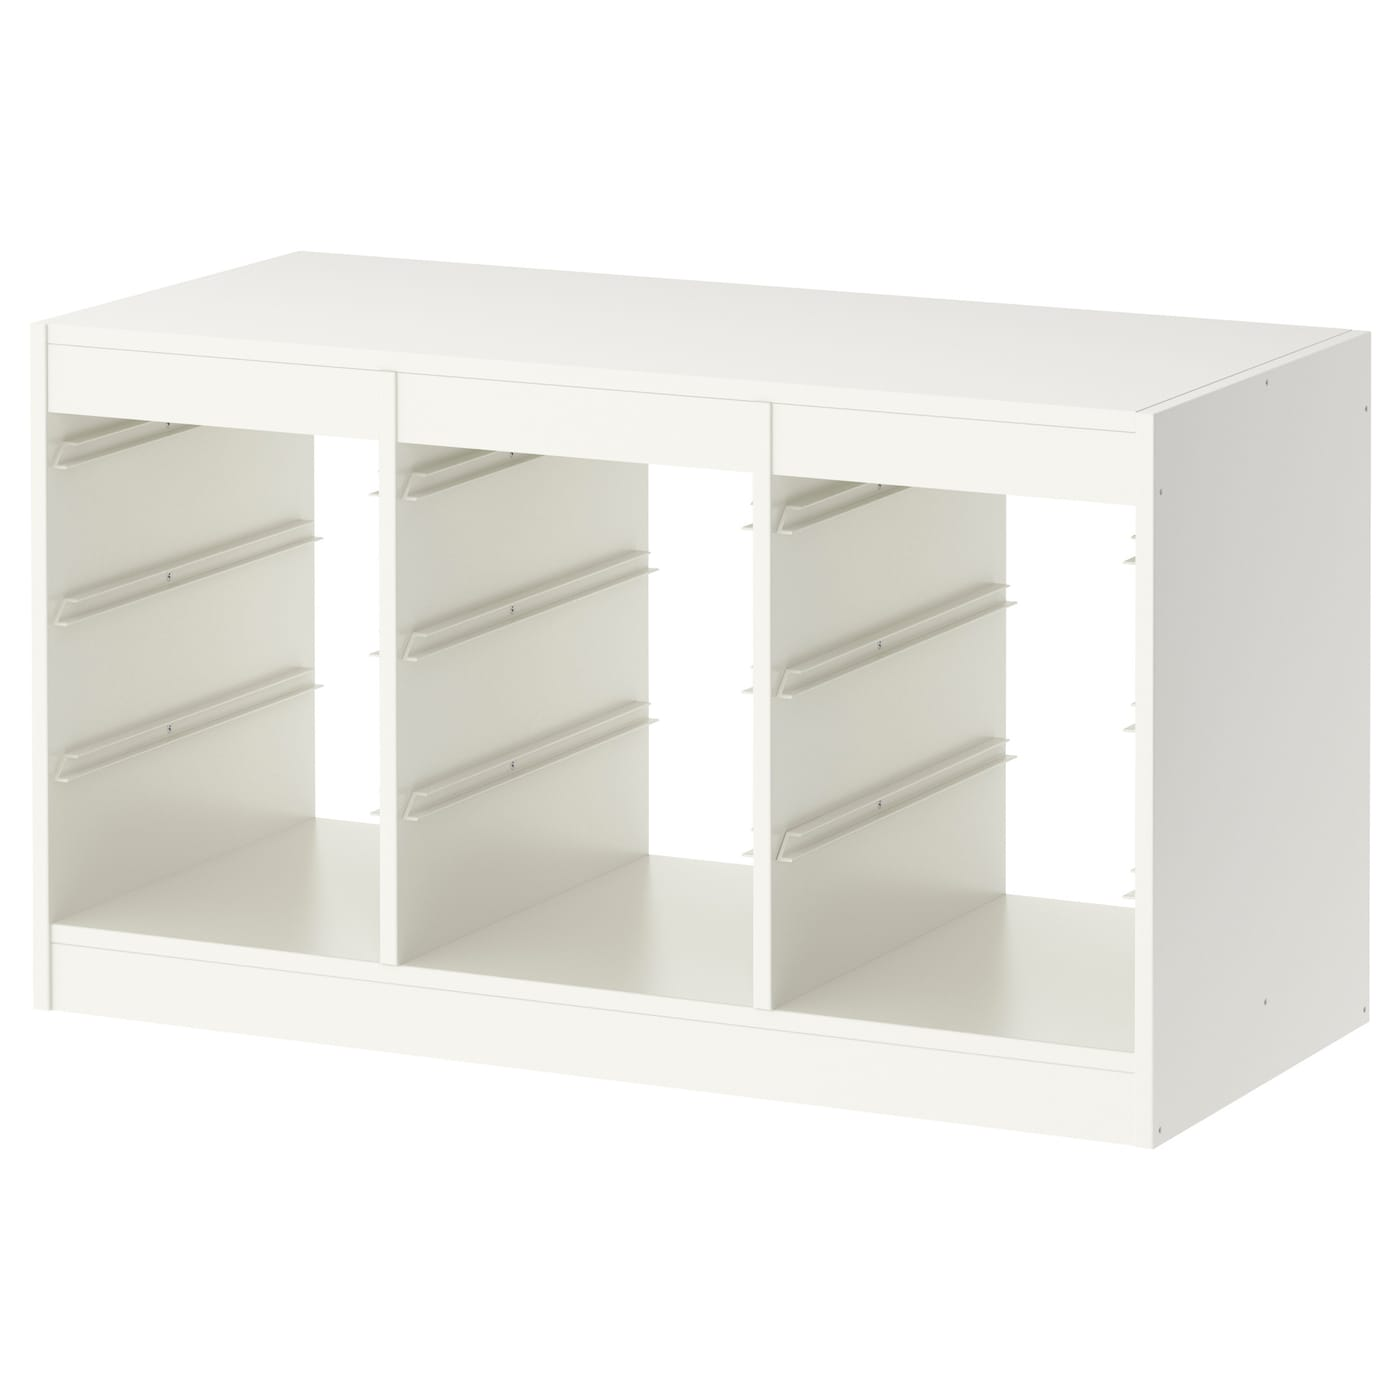 IKEA TROFAST frame Low storage makes it easier for children to reach and organise their things.